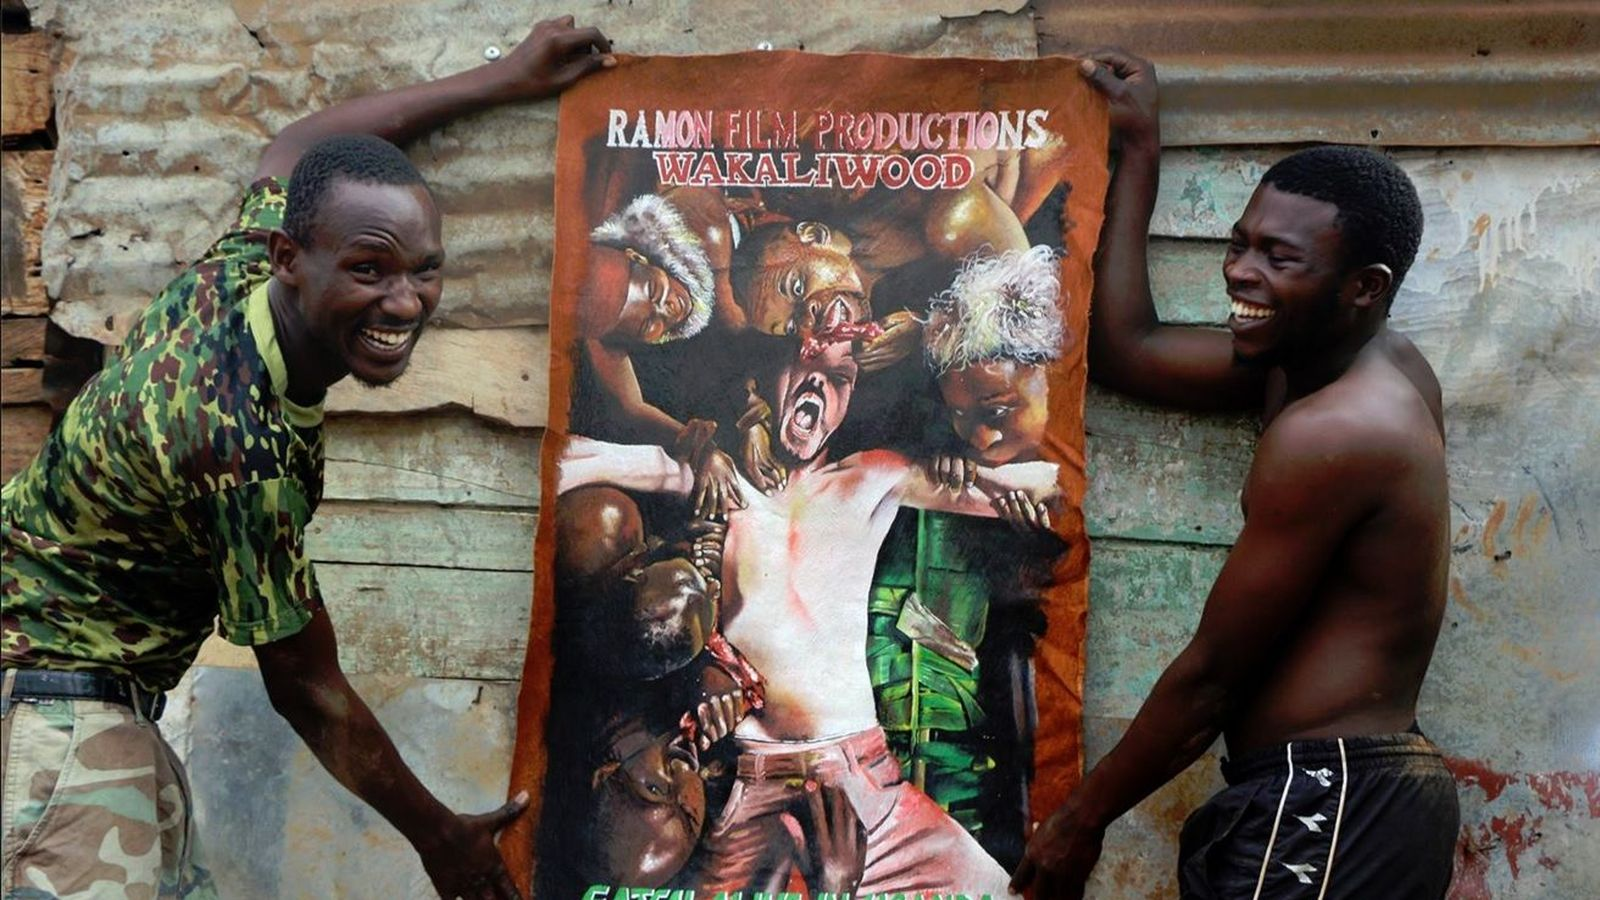 hollywood in uganda The 10 best movies about africa are the real ones that are this african movie narrates the notorious practices of uganda's dictator, his demagogic control, self corruption in africa, developing nation, film, hollywood, movie, poverty, third-world, third-world cinema.